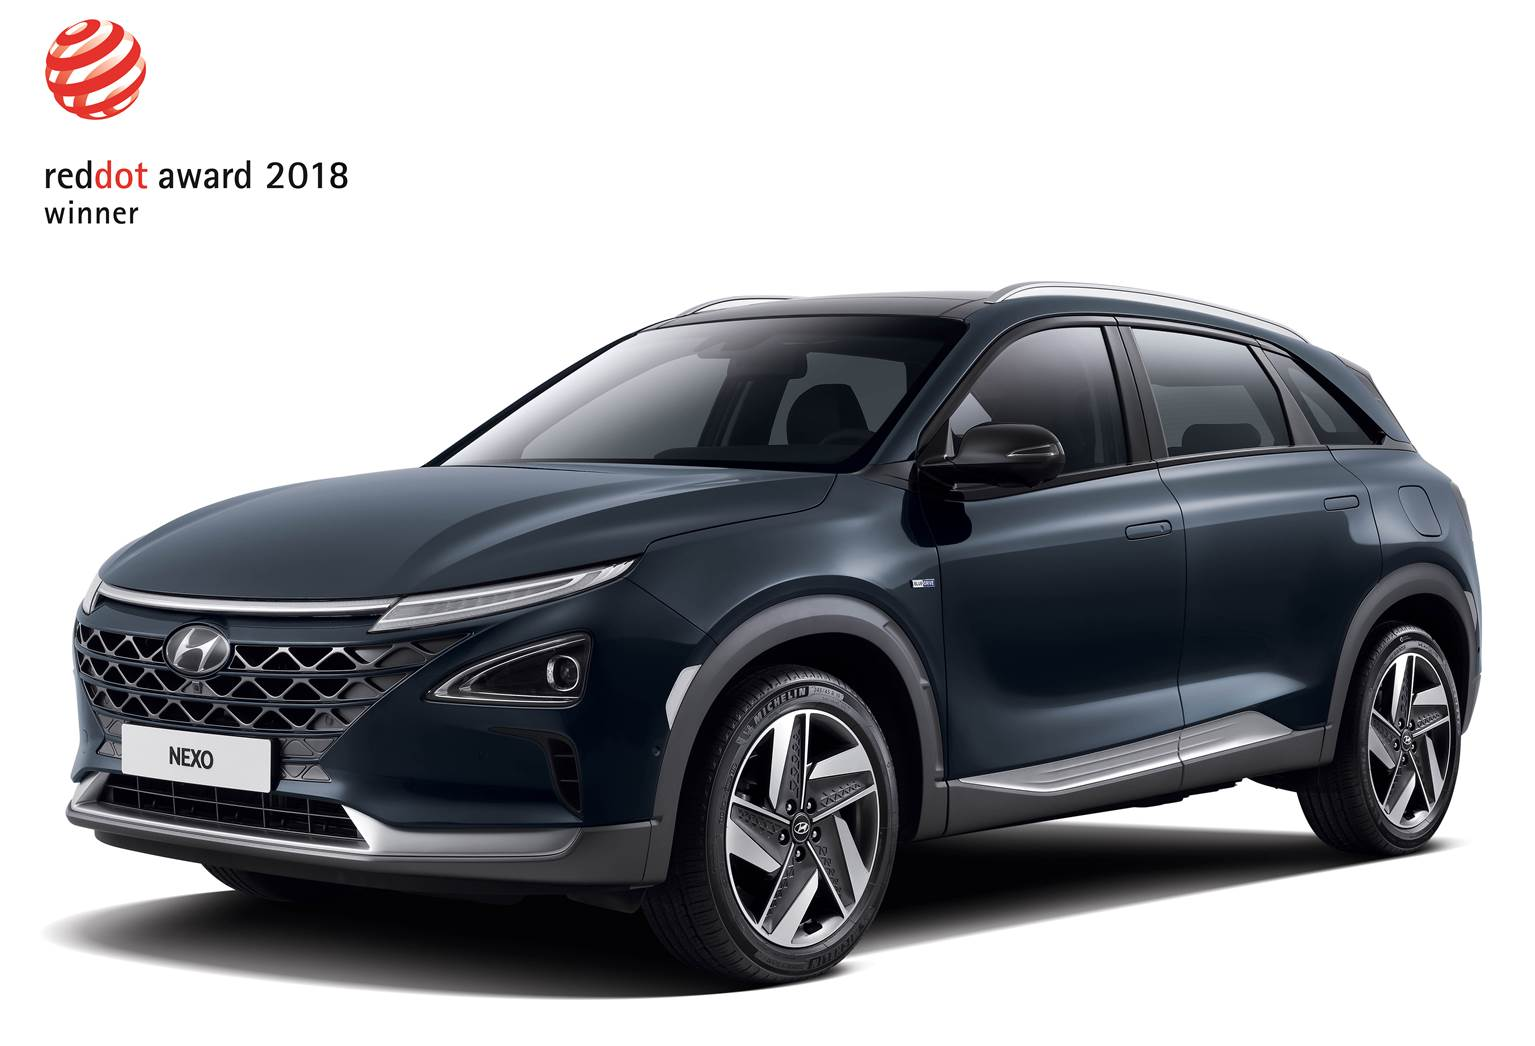 Hyundai Nexo Red Design Award